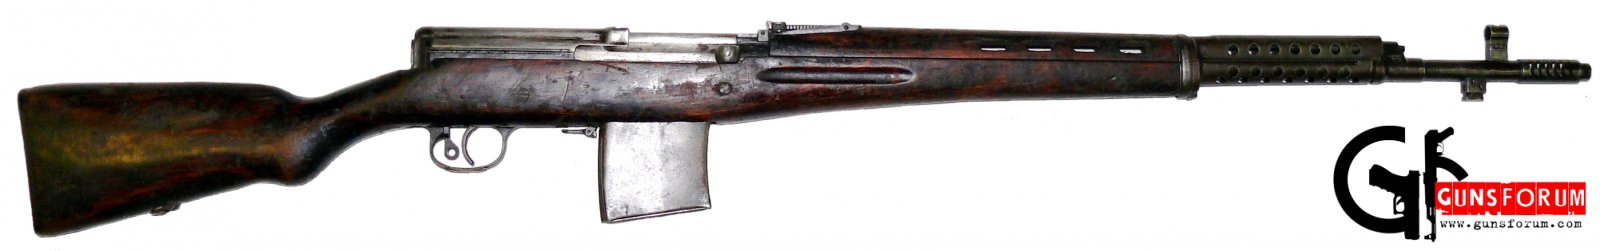 Самозарядная винтовка Токарева (СВТ) Tokarev semiautomatic rifle (SVT)